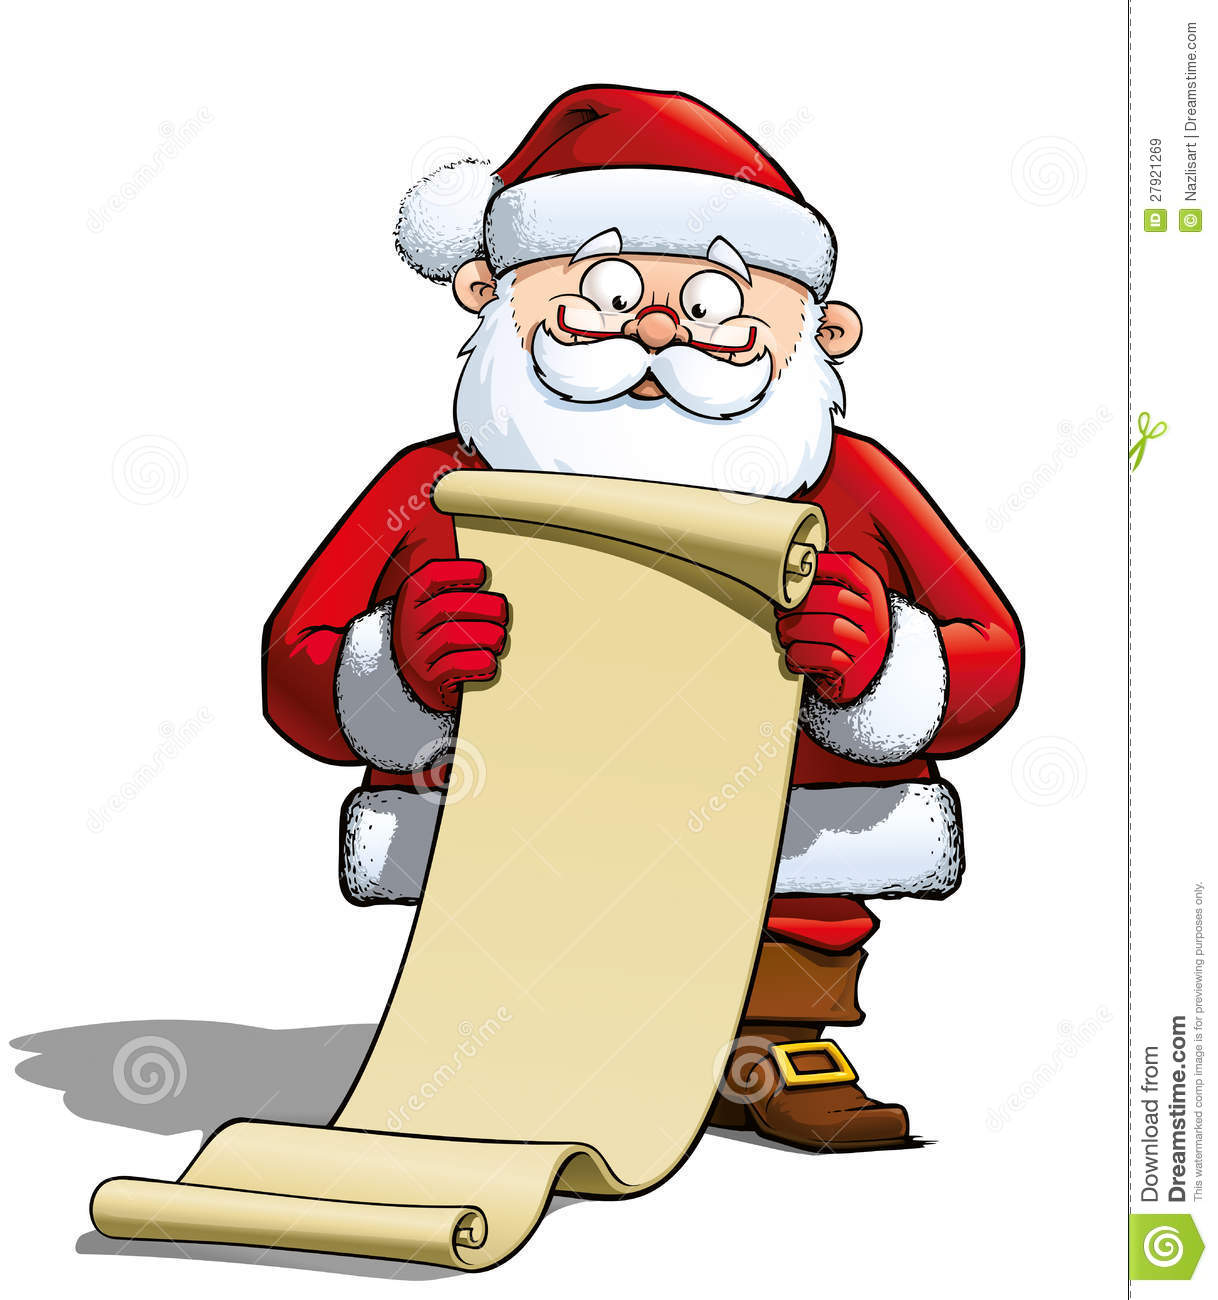 naughty xmas clip art - photo #39